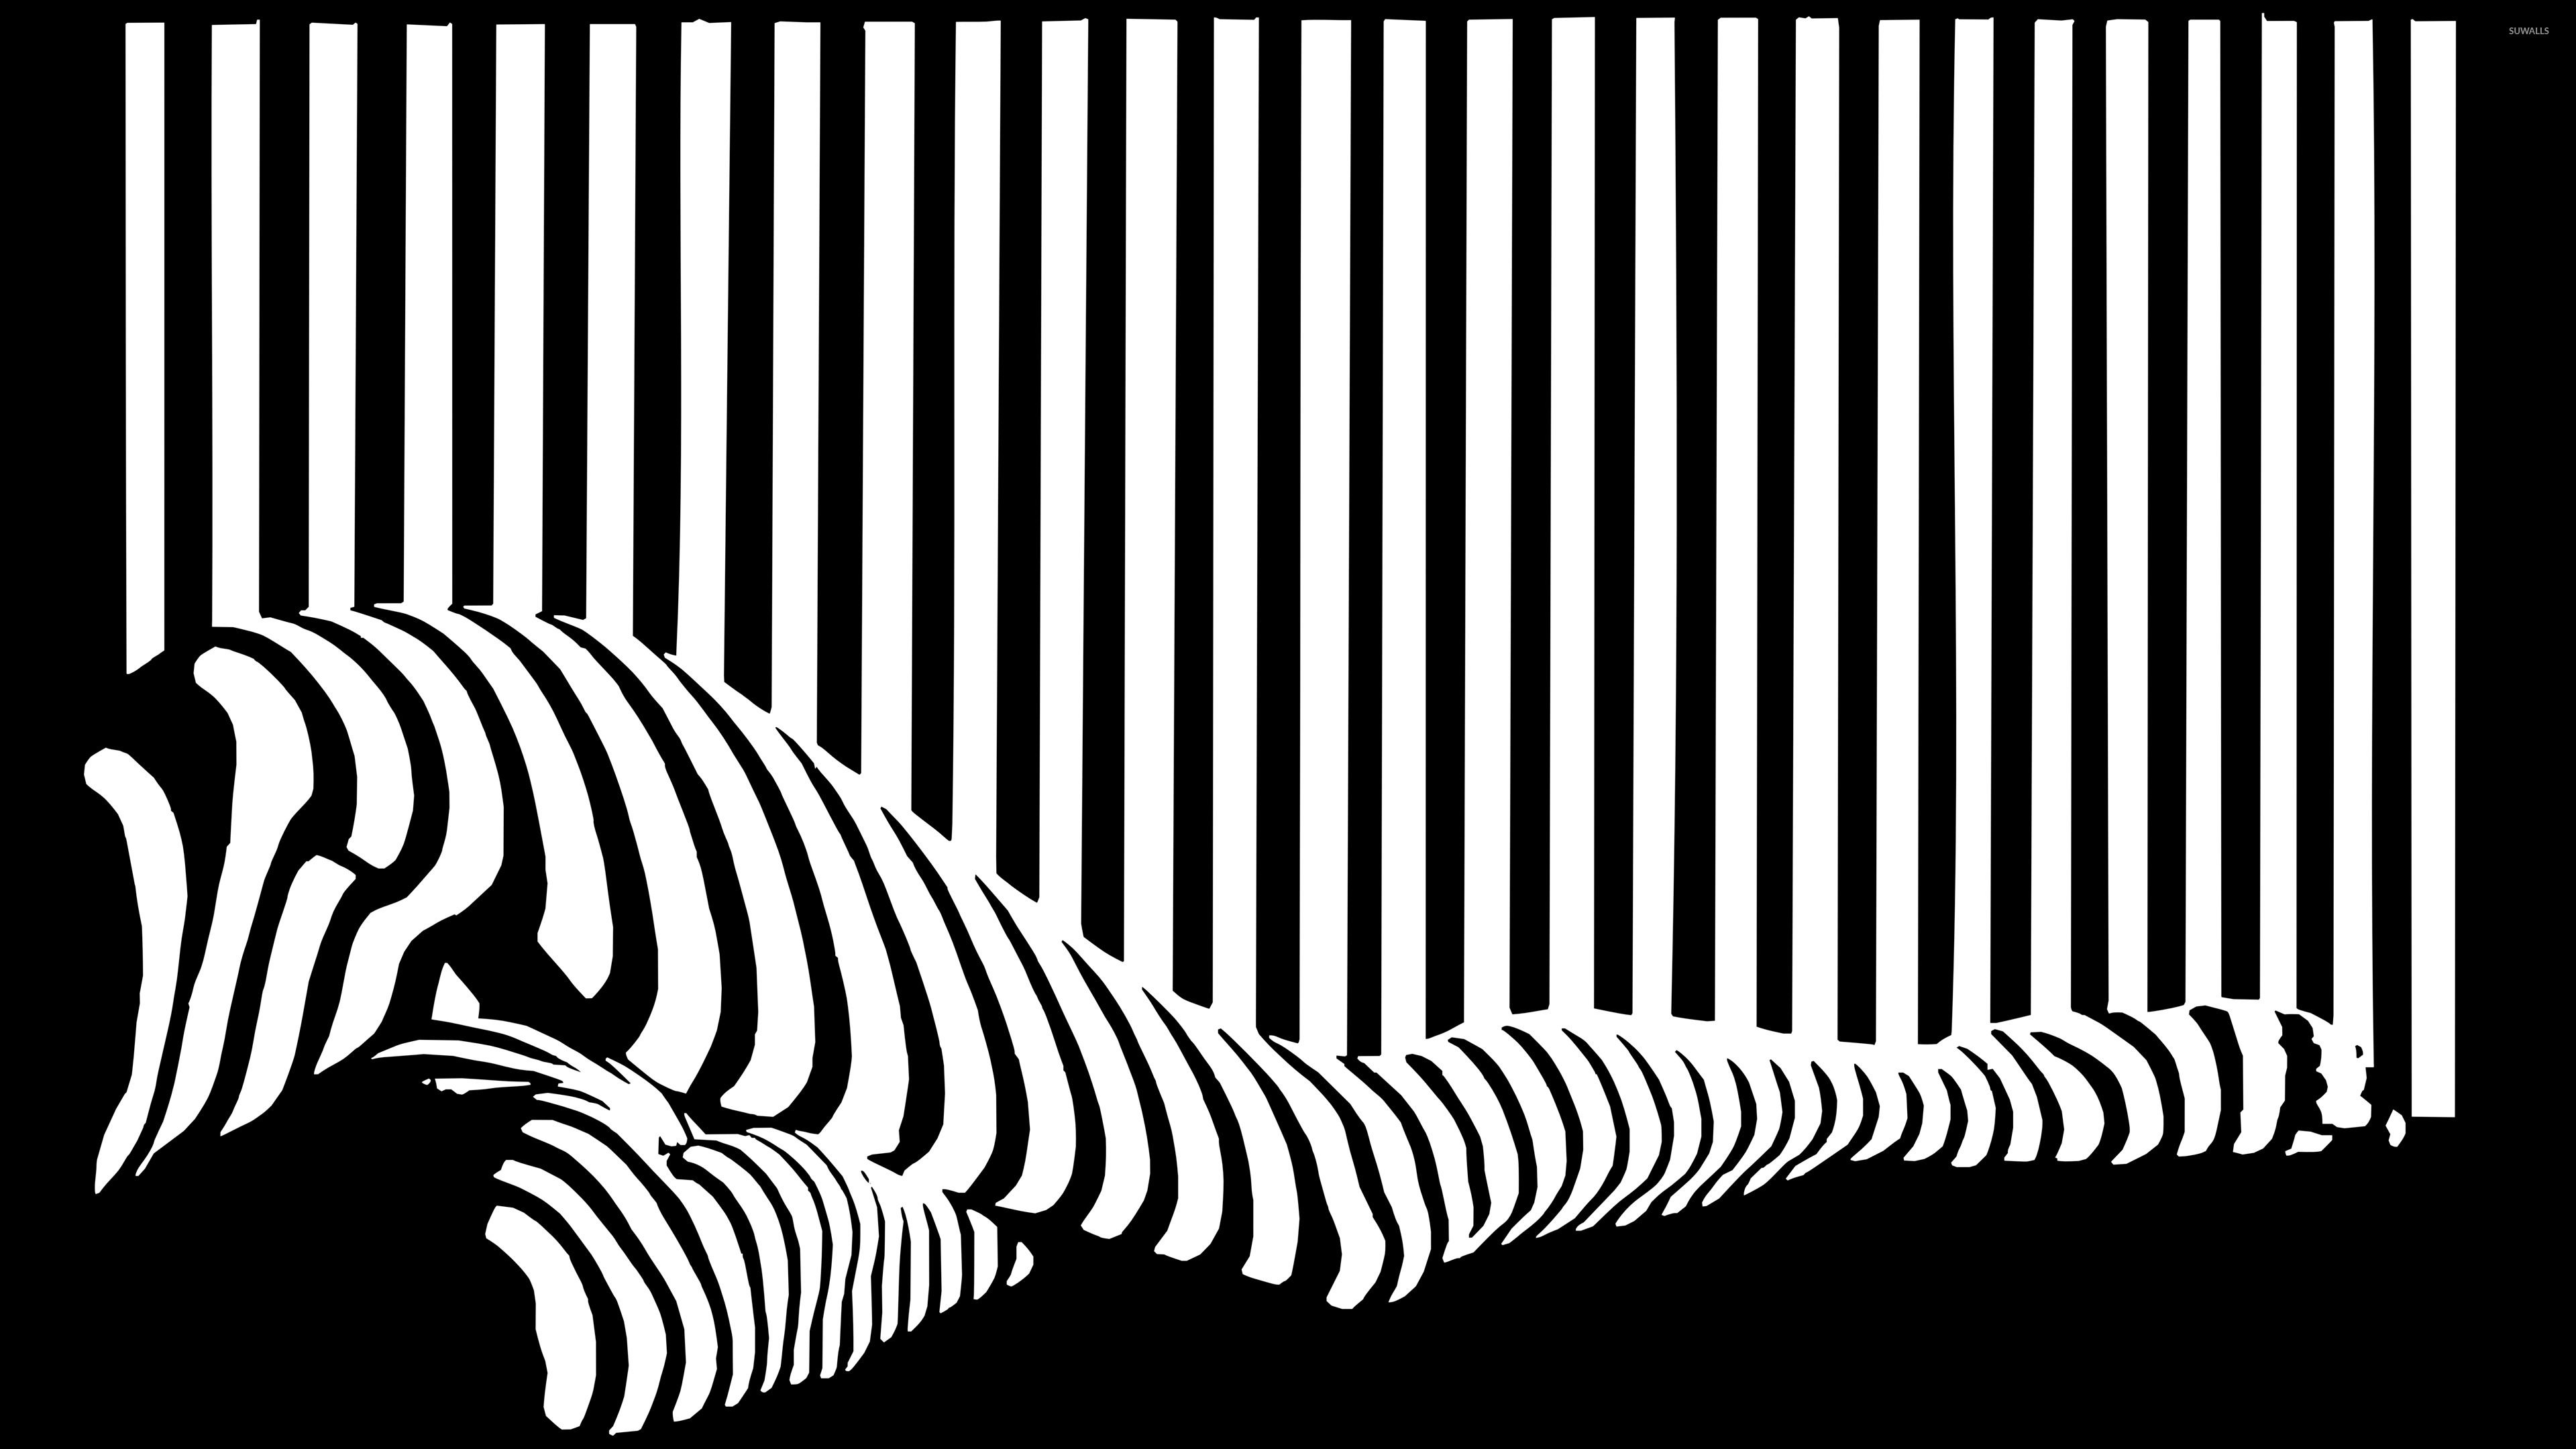 Magnificent Black And White Stripes Decorations Damput Home Abstract Black And White Abstract Wallpaper Ideas for black and white wallpaper hd